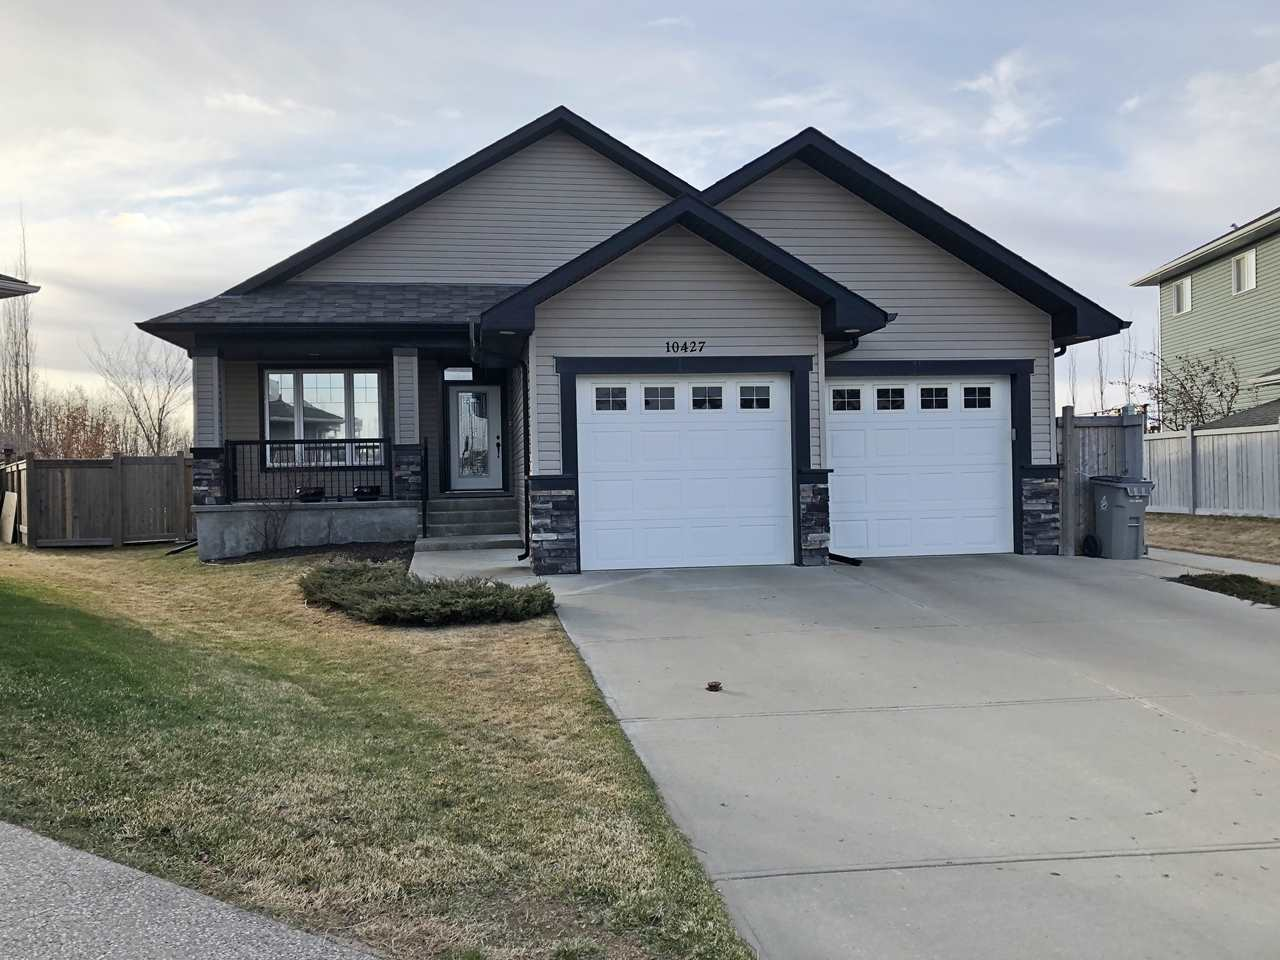 MLS® listing #E4148070 for sale located at 10427 94 Street